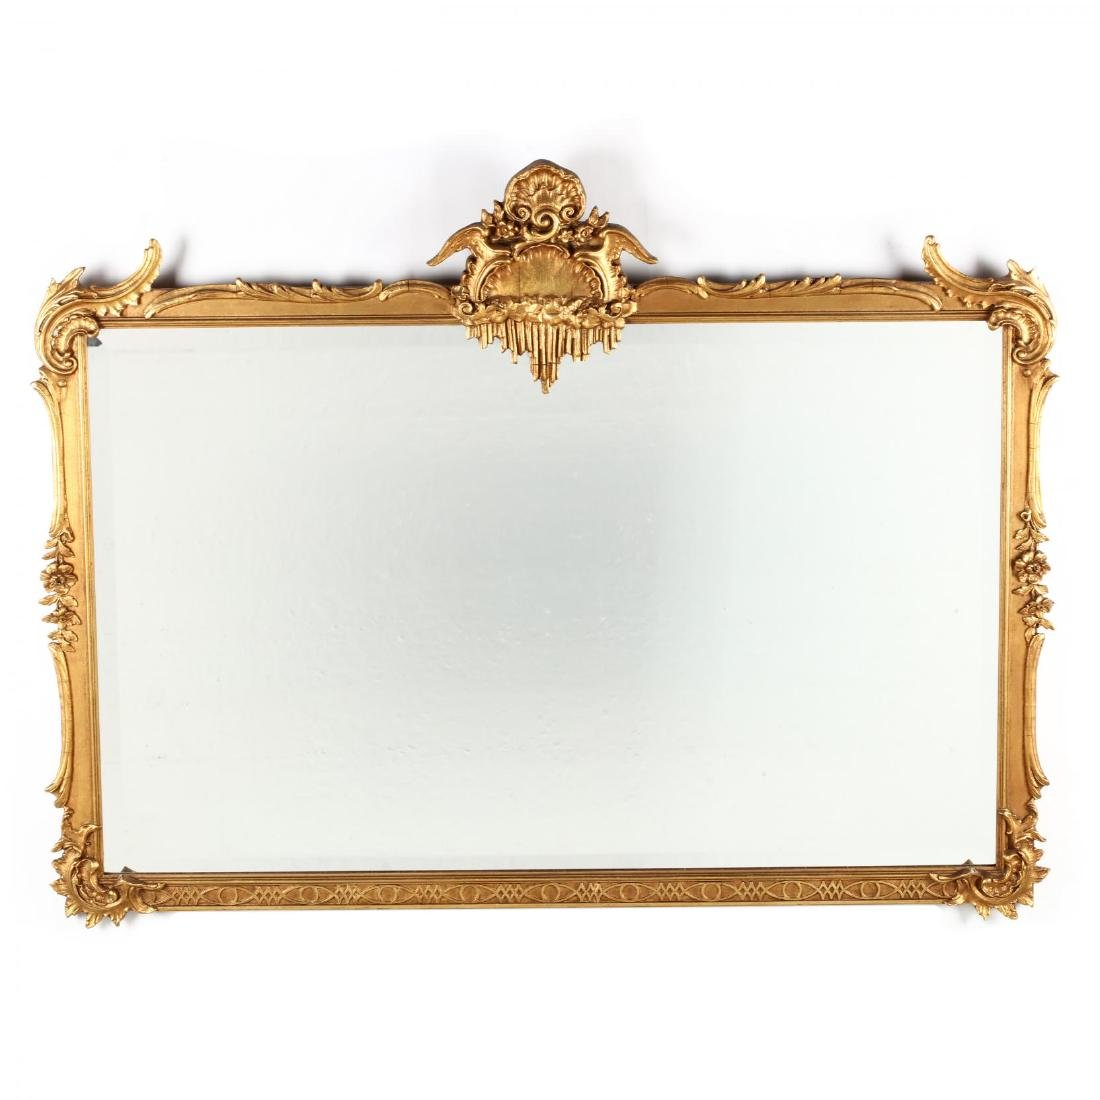 Rococo Style Carved and Gilt Over Mantel Mirror